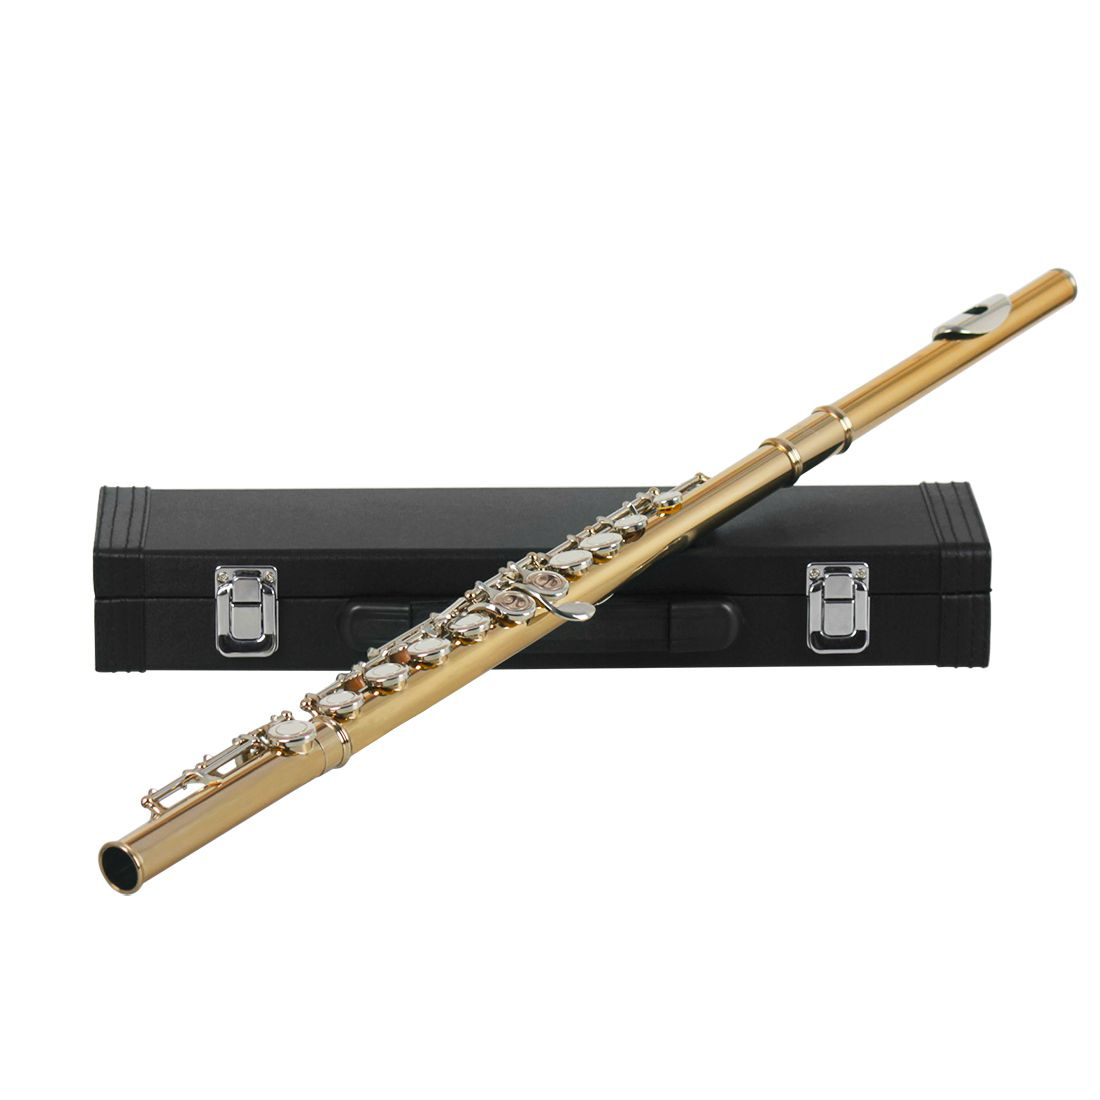 New Western Concert Flute 16 Holes C Key Cupronickel Musical Instrument With Cleaning Cloth Stick Gloves Screwdriver Gold